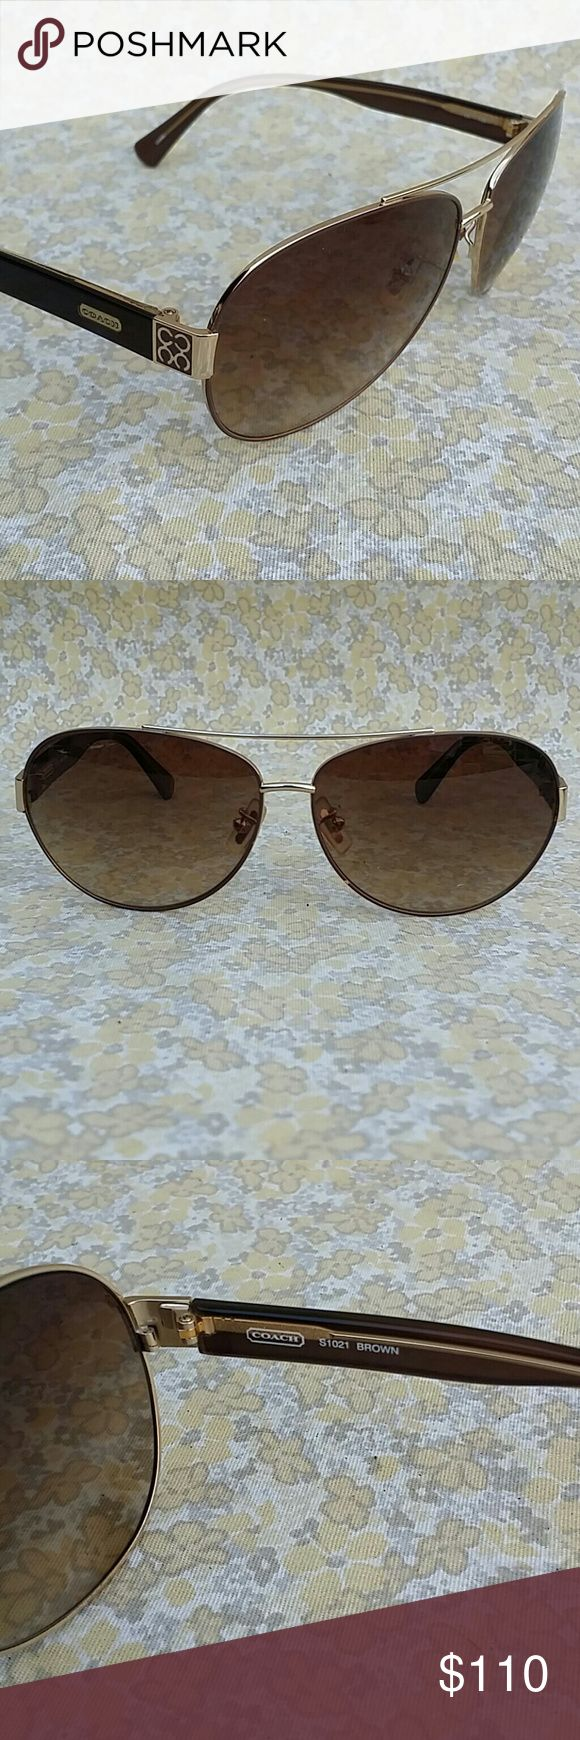 FLASH SALE Coach S1021 Gold Aviator Sunglasses Coach S1021 Brown & Gold Aviator Sunglasses Coach Accessories Sunglasses